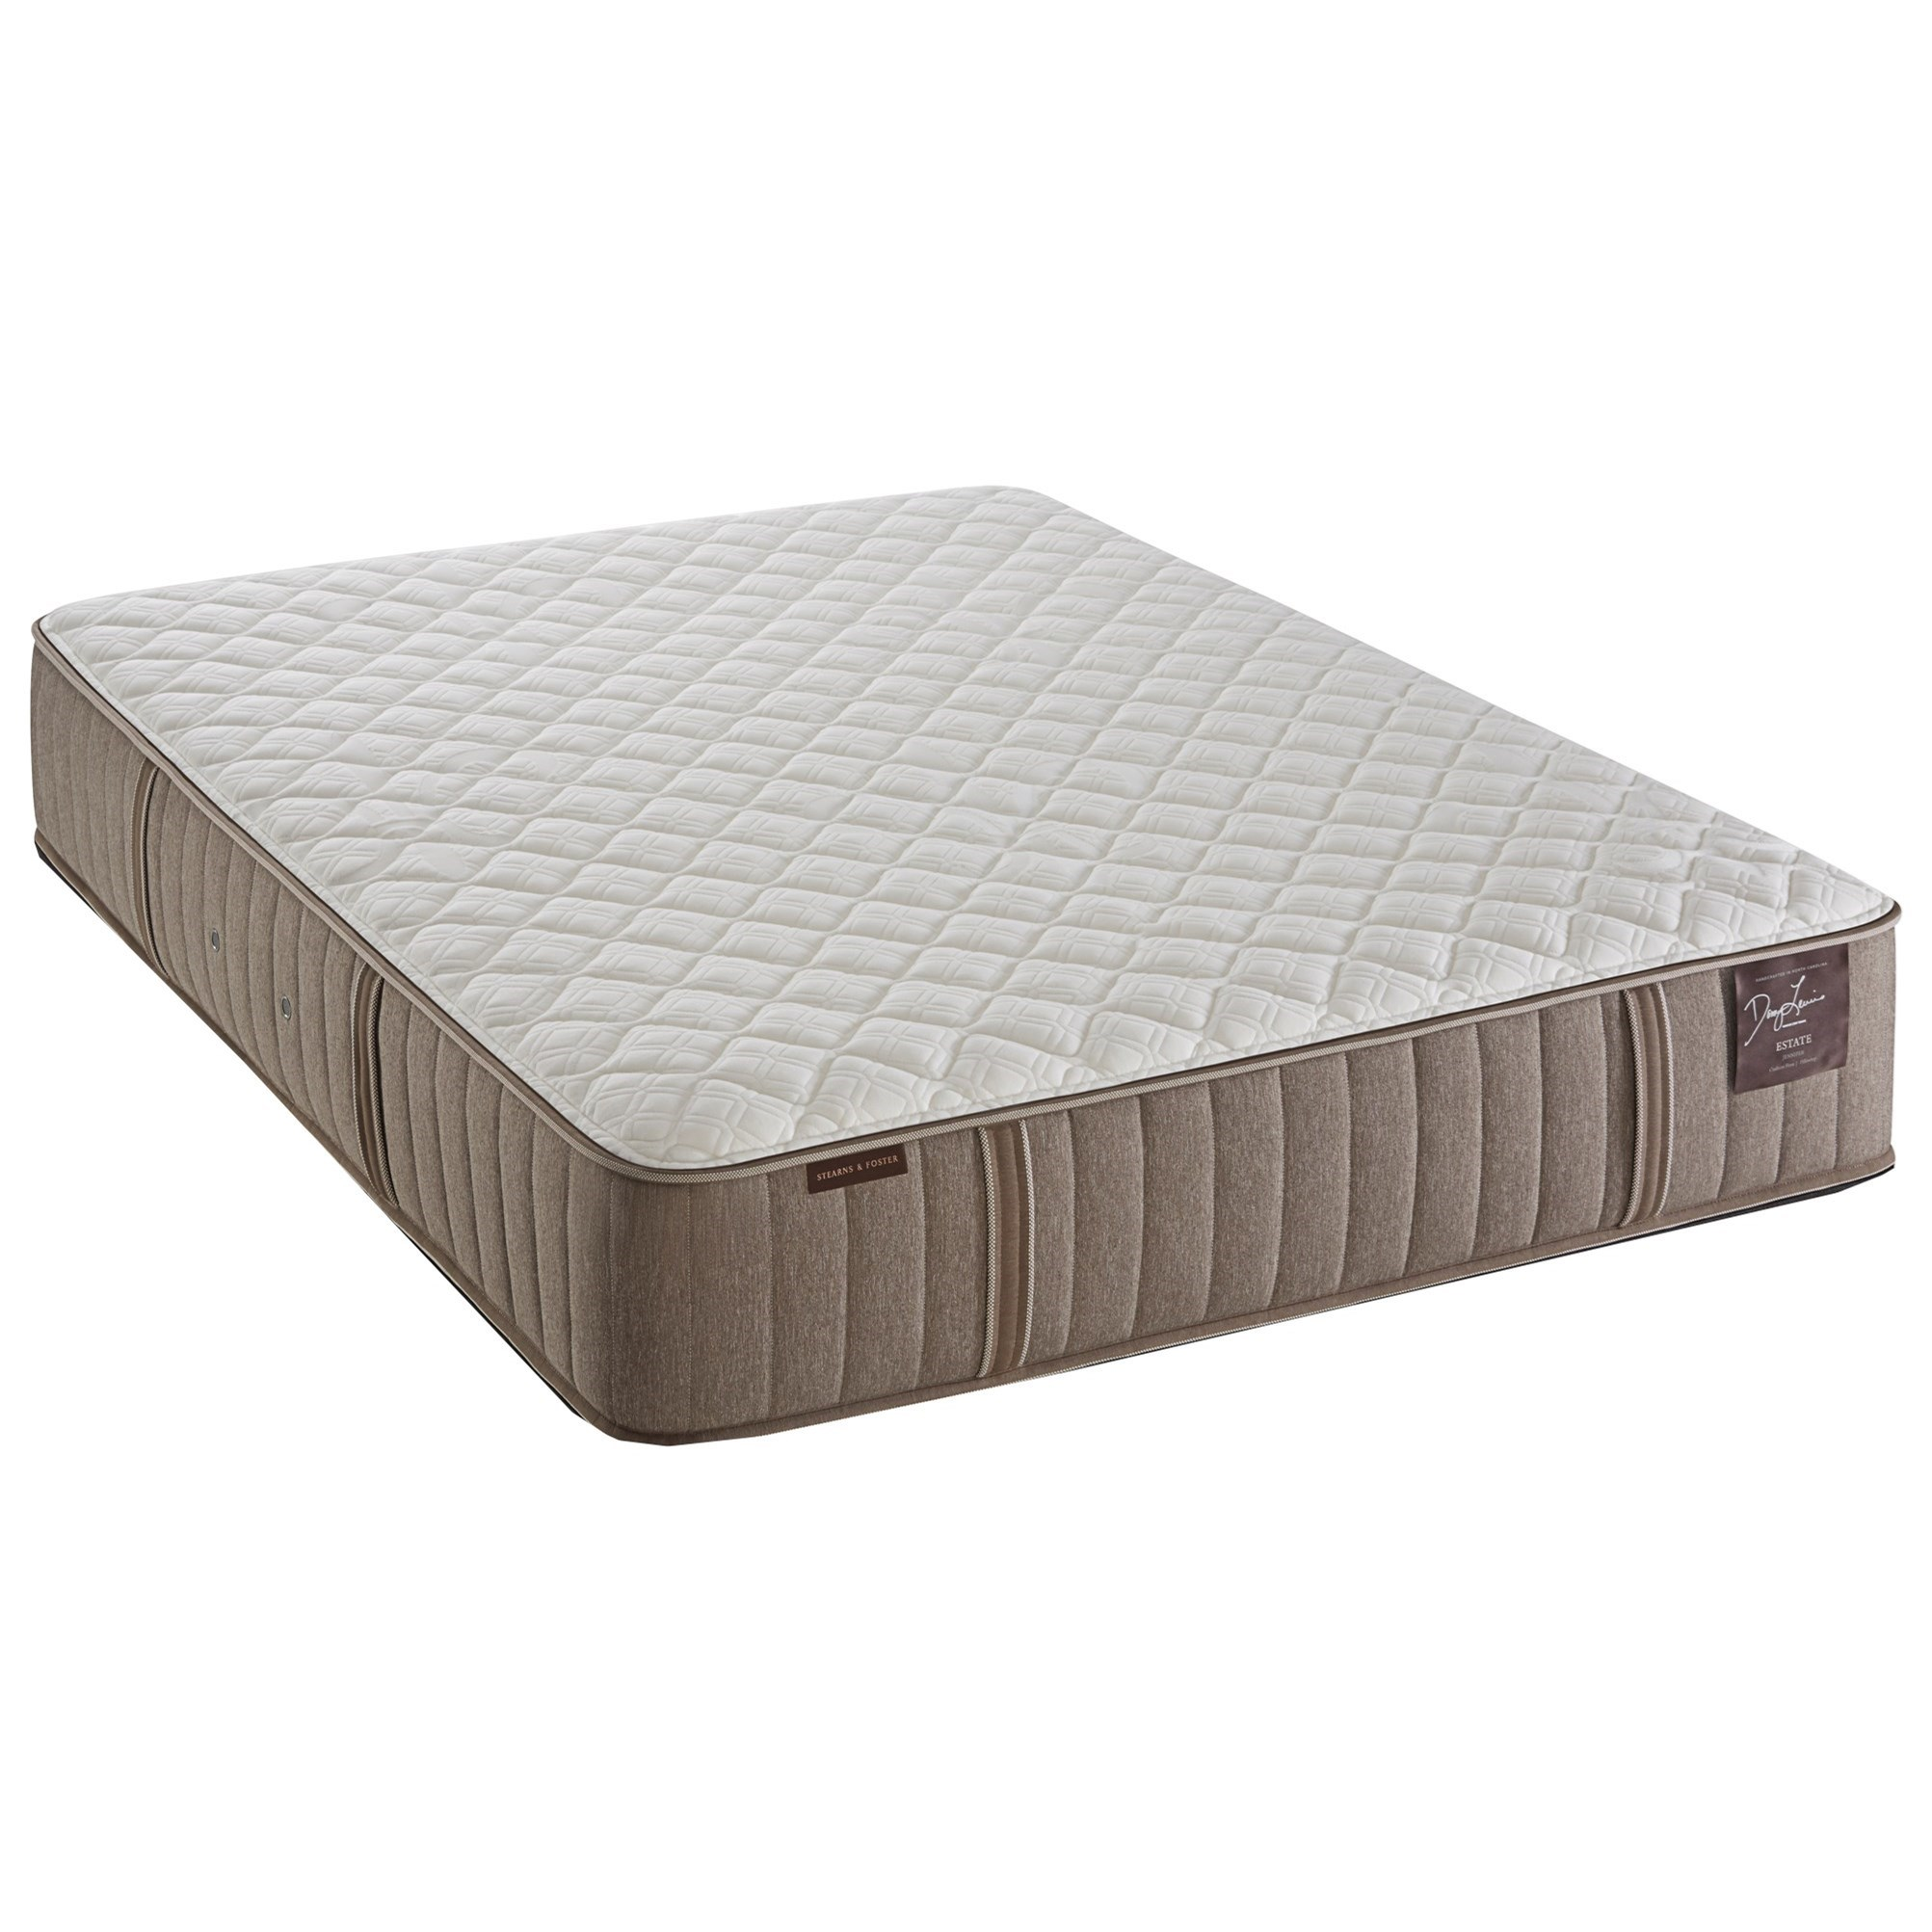 Stearns & Foster Scarborough Cal King Ultra Firm Mattress - Item Number: UFirm-CK